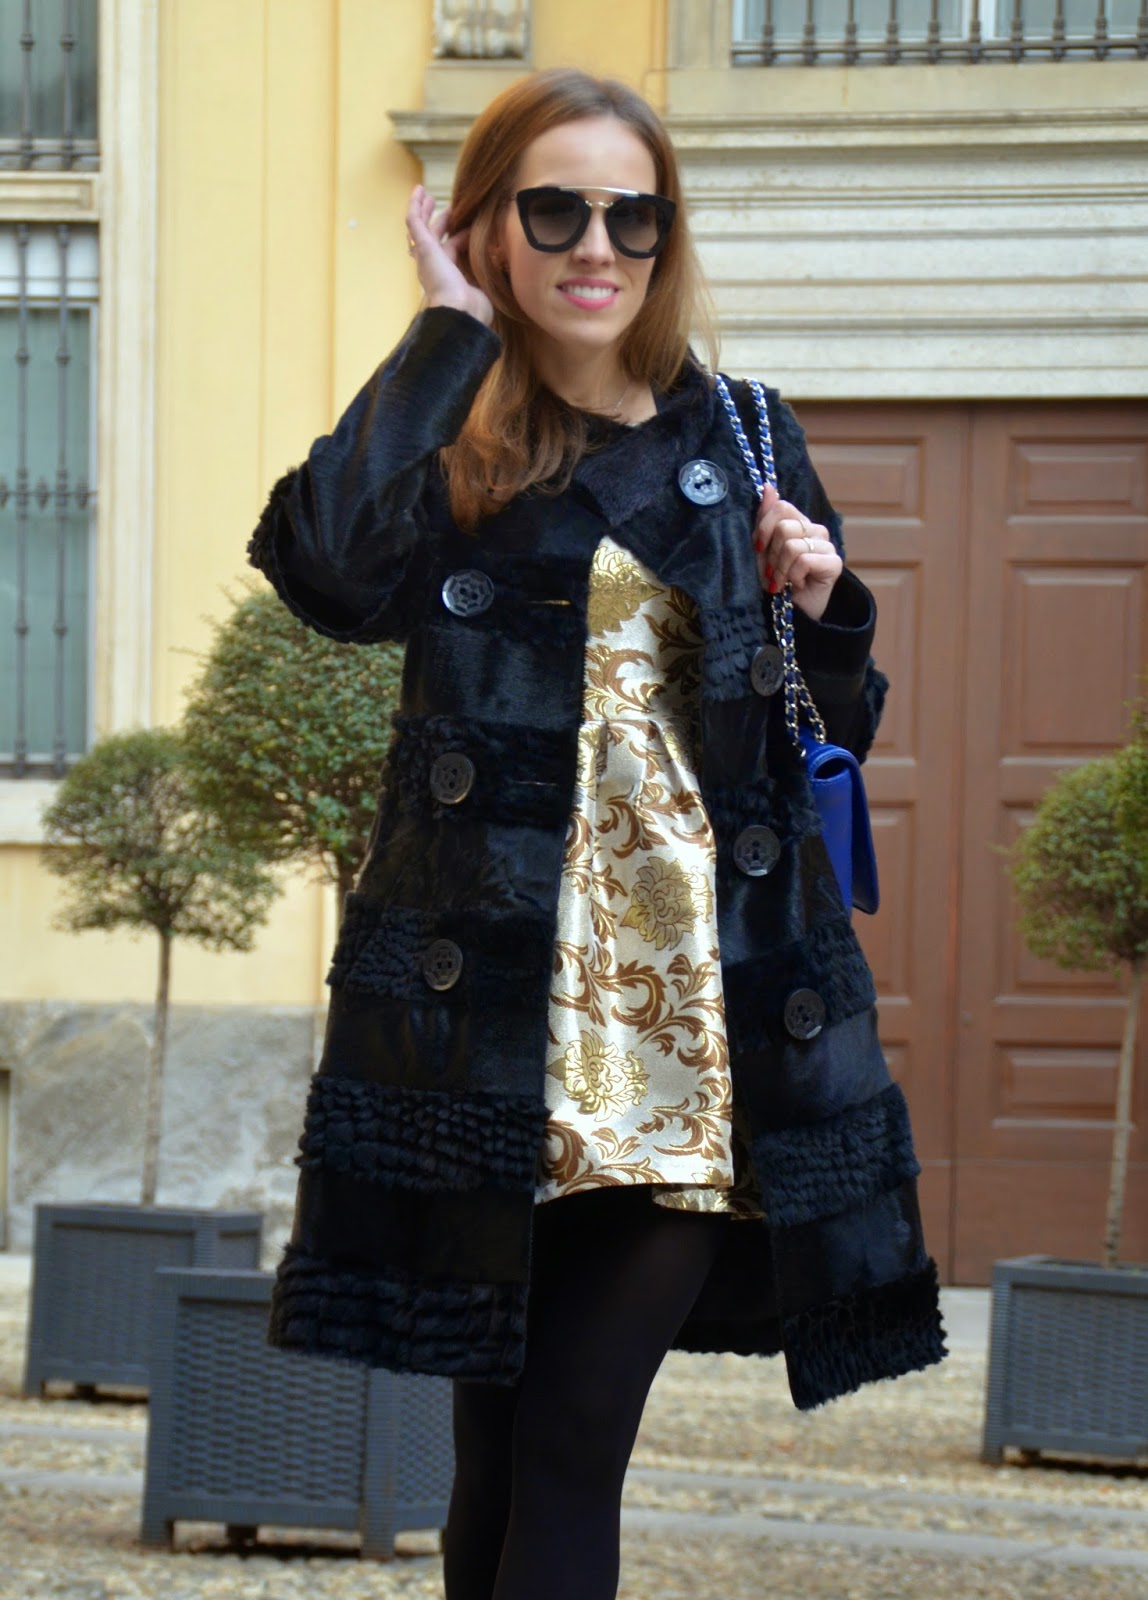 gold-dress-black-fur-coat-prada-sunglasses